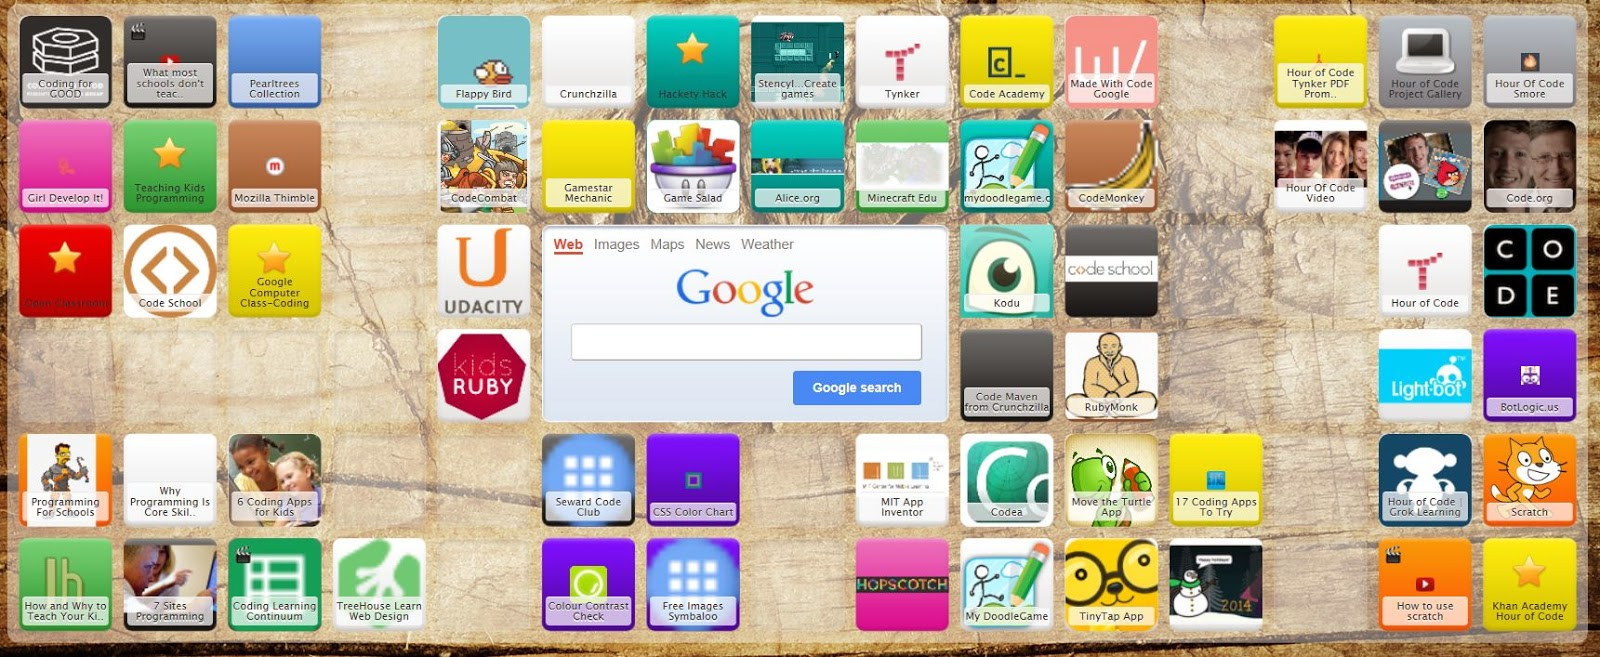 http://www.symbaloo.com/home/mix/coding-coding-coding